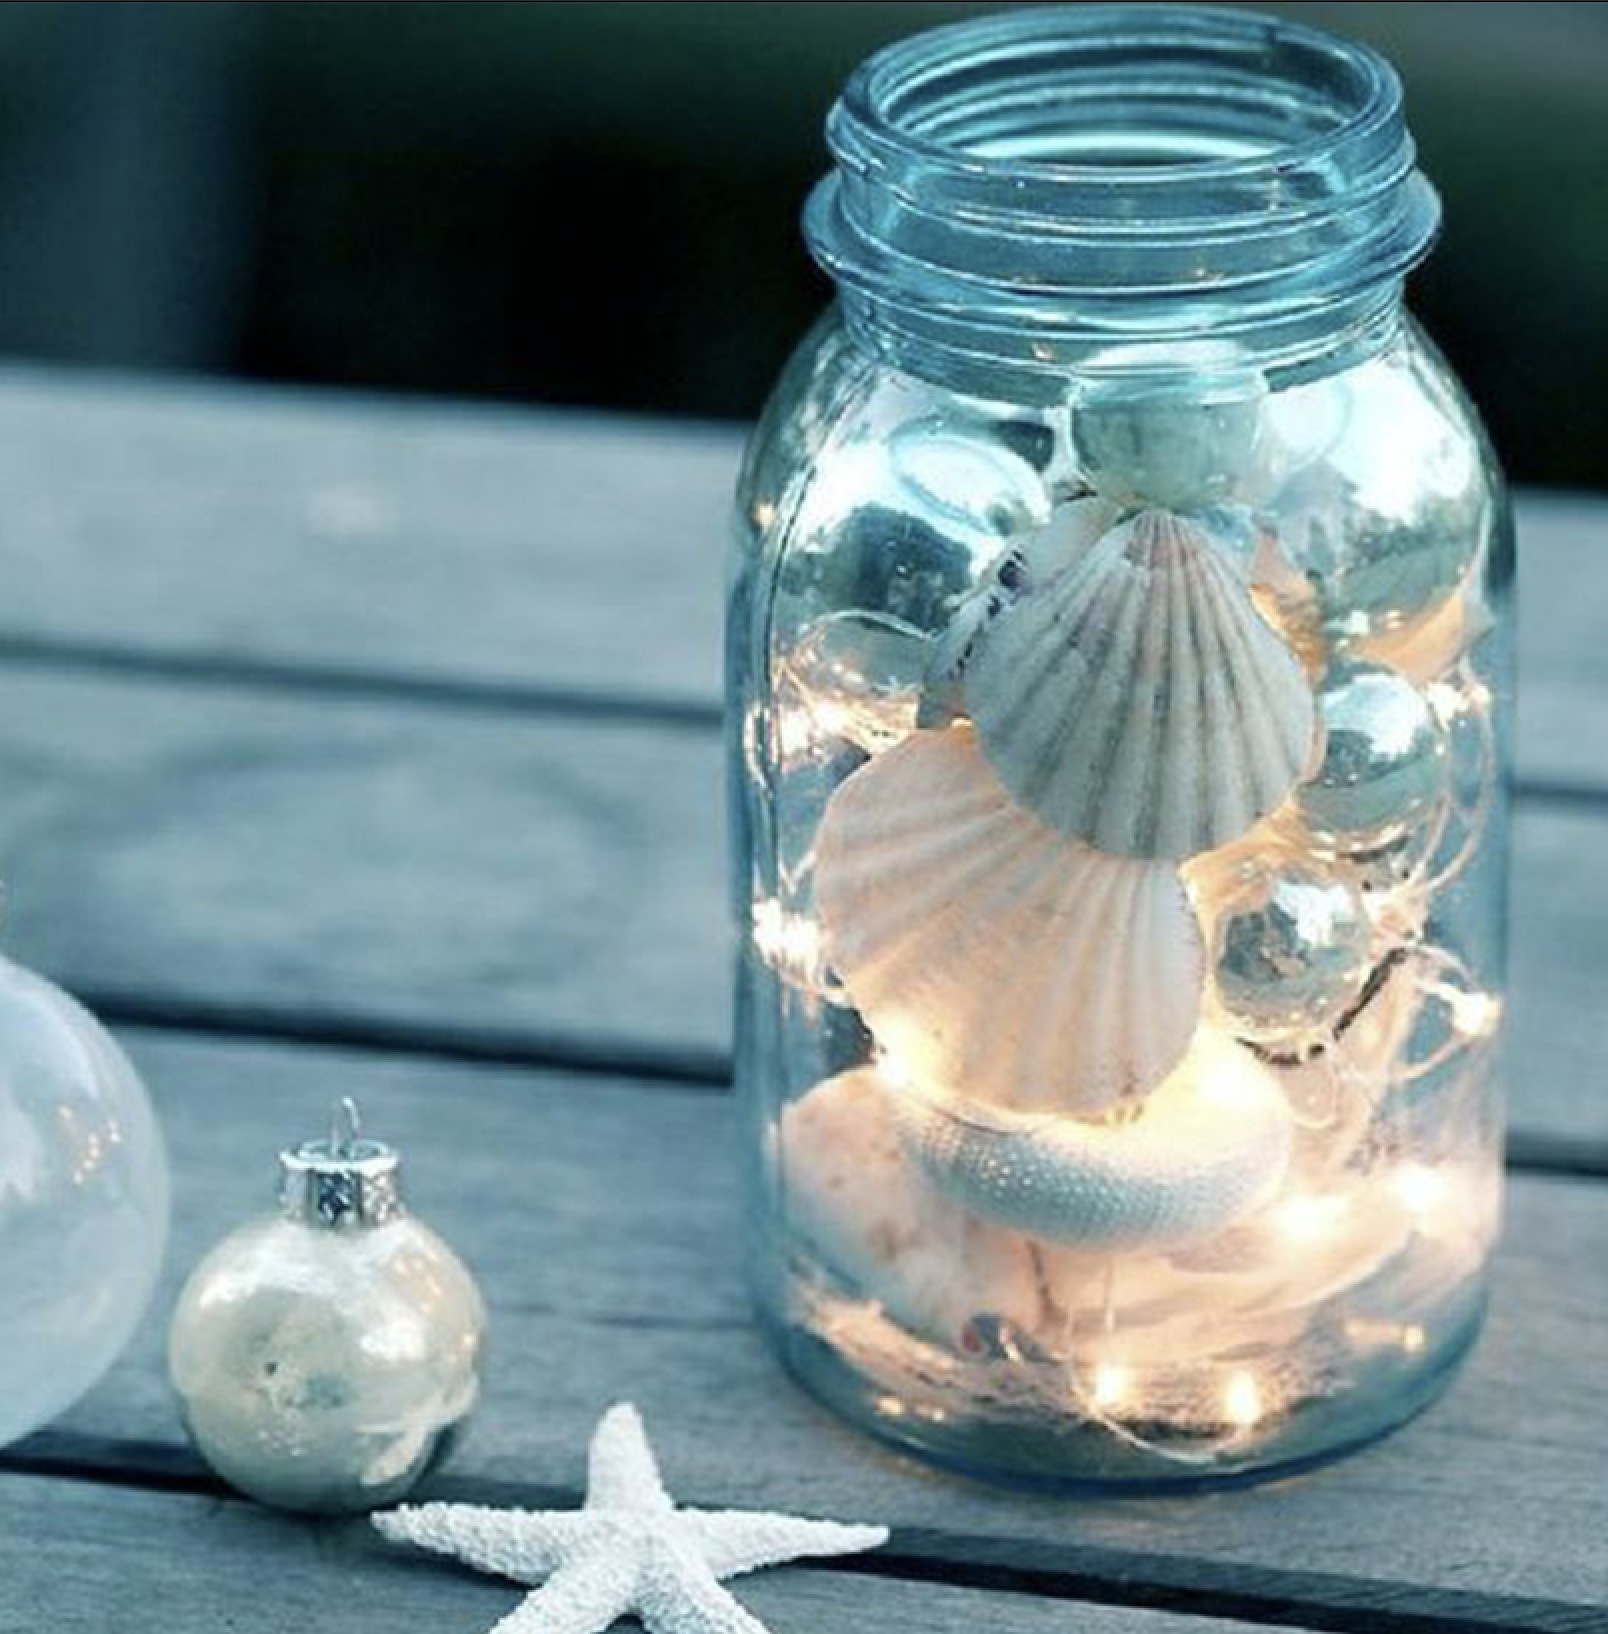 Display Jars - I love to fill mason jars with pretty much anything and just display them on counters and shelves. It can be functional, like for pens on your desk. Or it can just be pretty, like to display seashells or sea glass on a shelf.